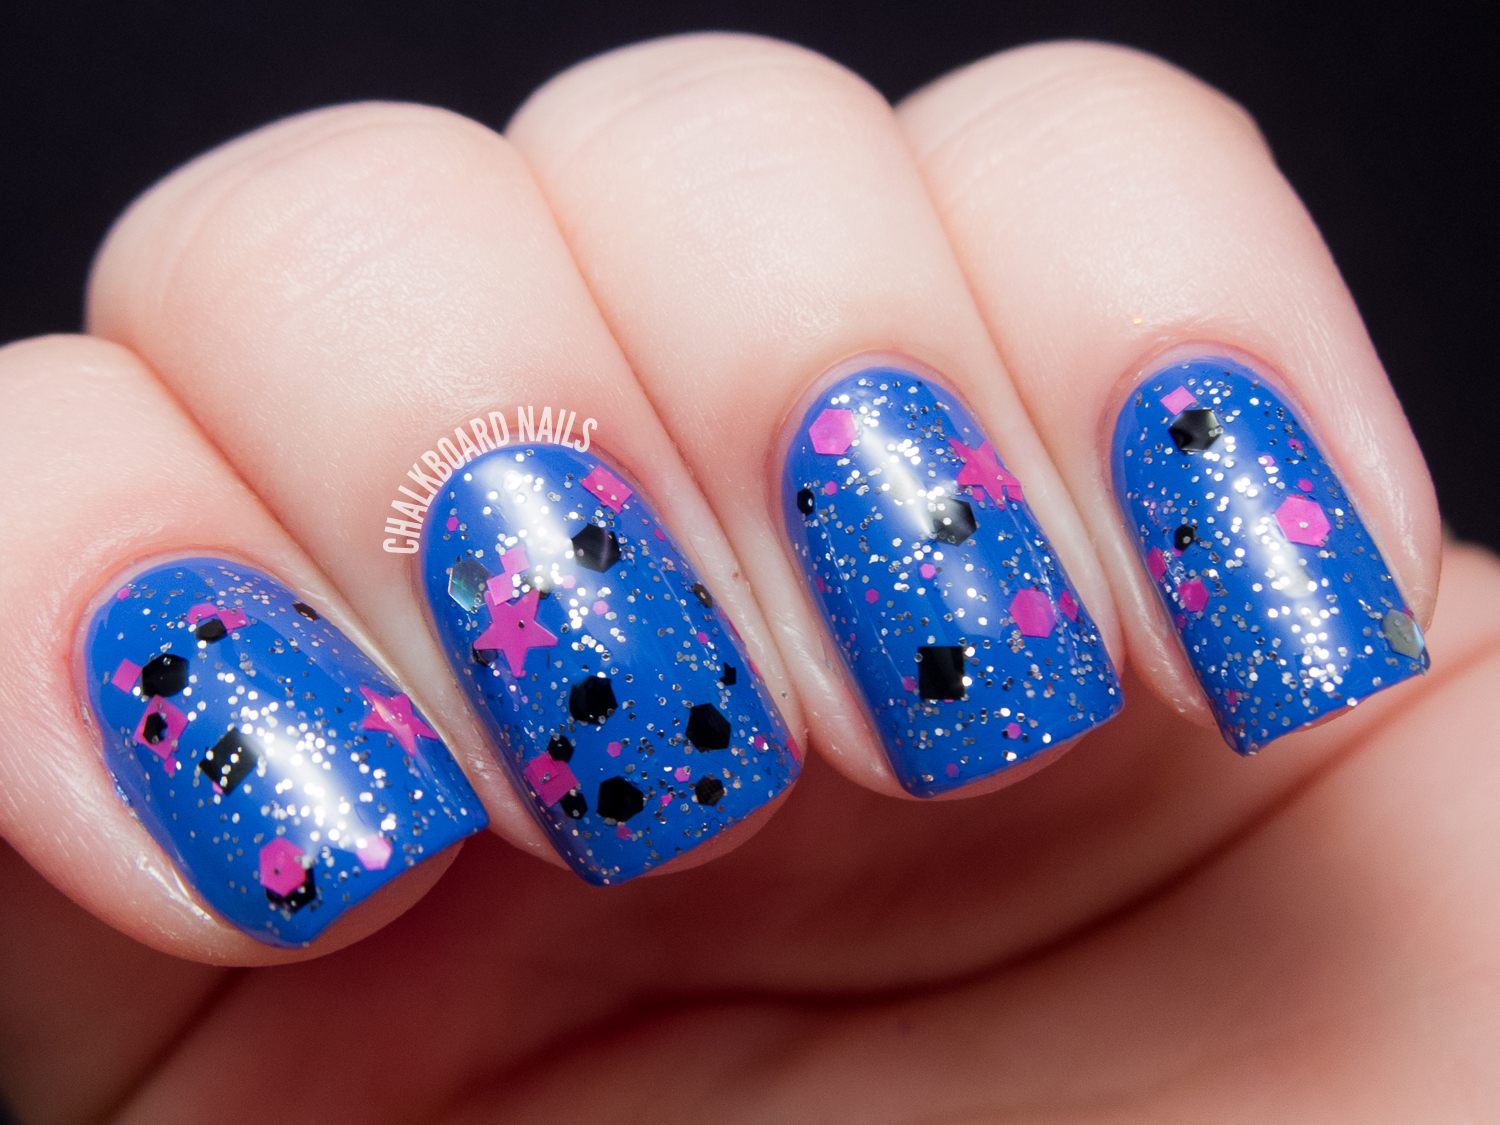 Chalkboard Nails: Starrily We're All Mad Here